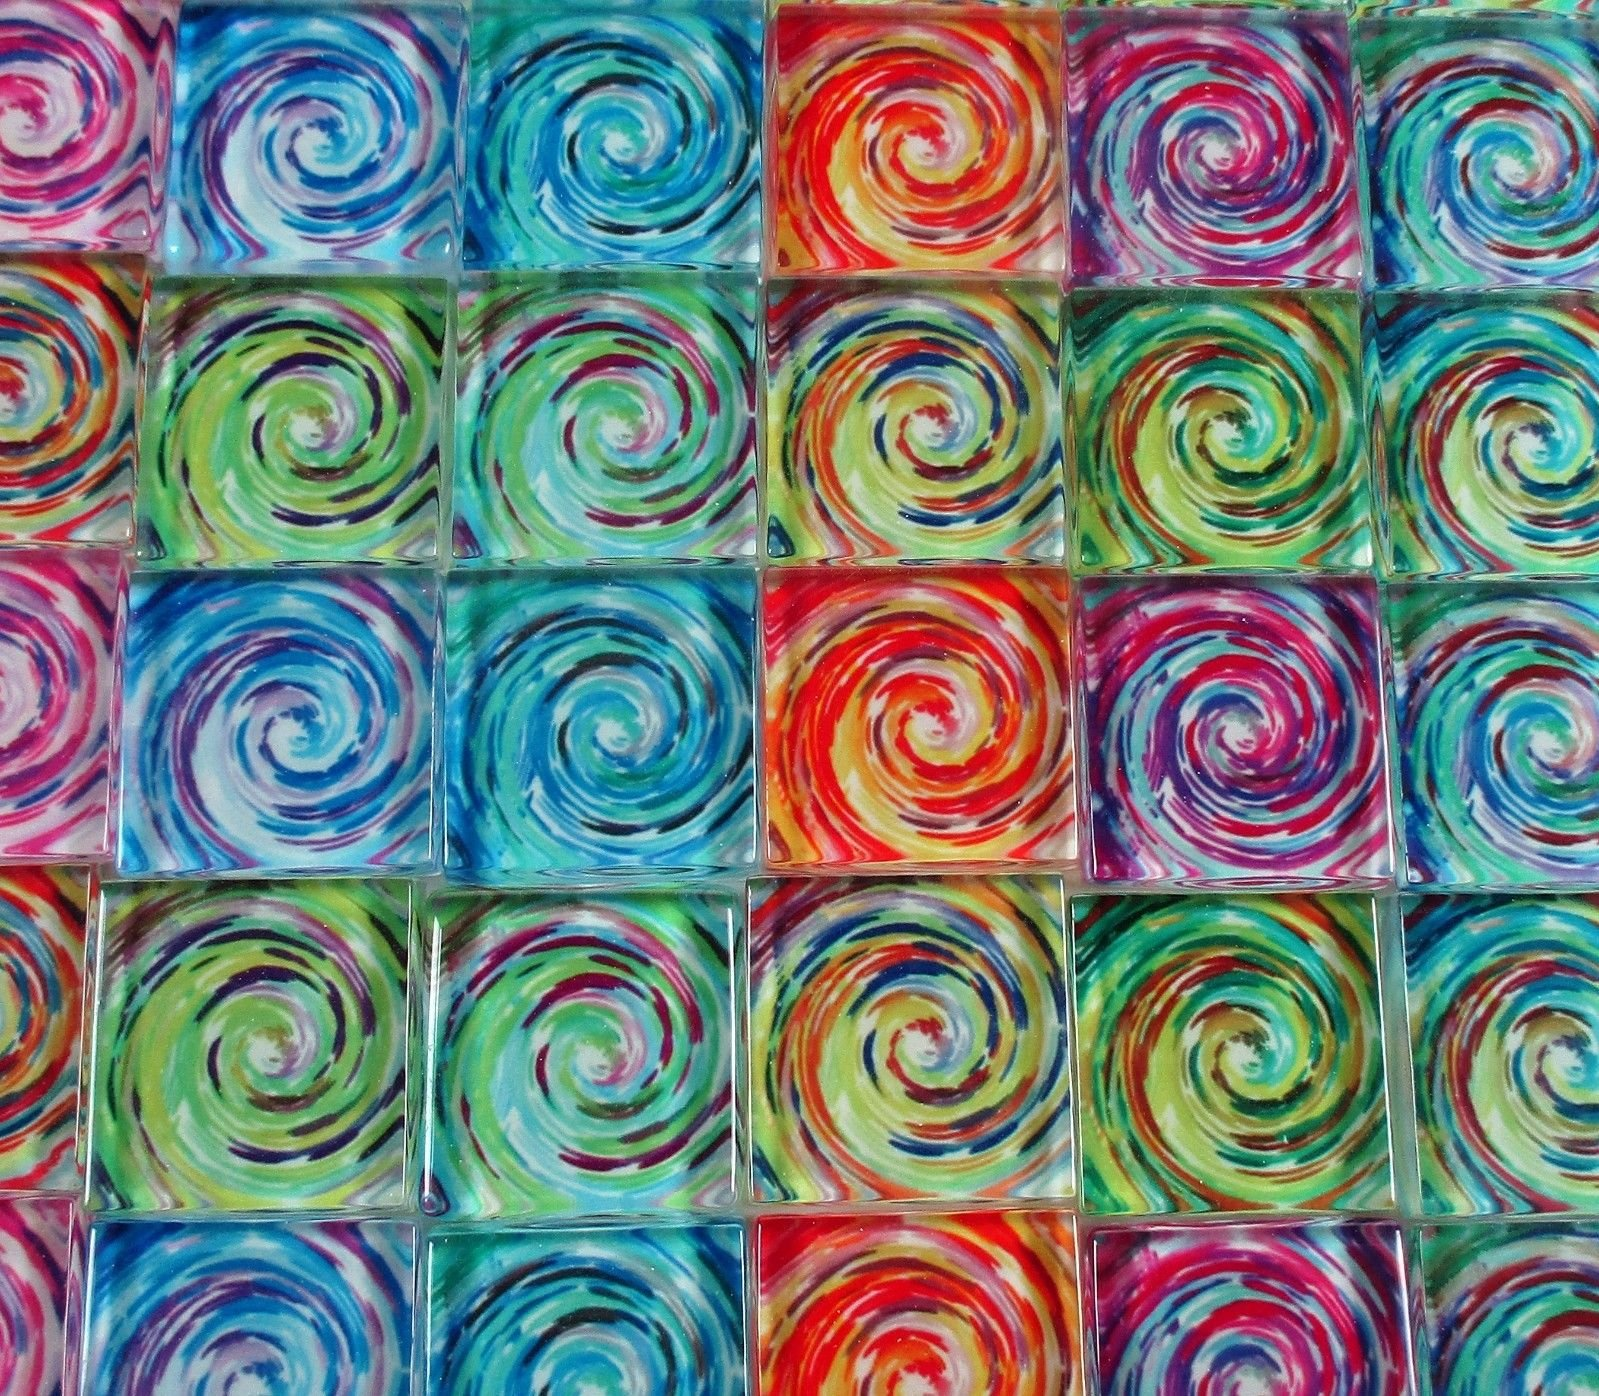 Glass Mosaic Tiles - Van Gogh Swirls Blue Orange Green Blue Pink 1'' Squares